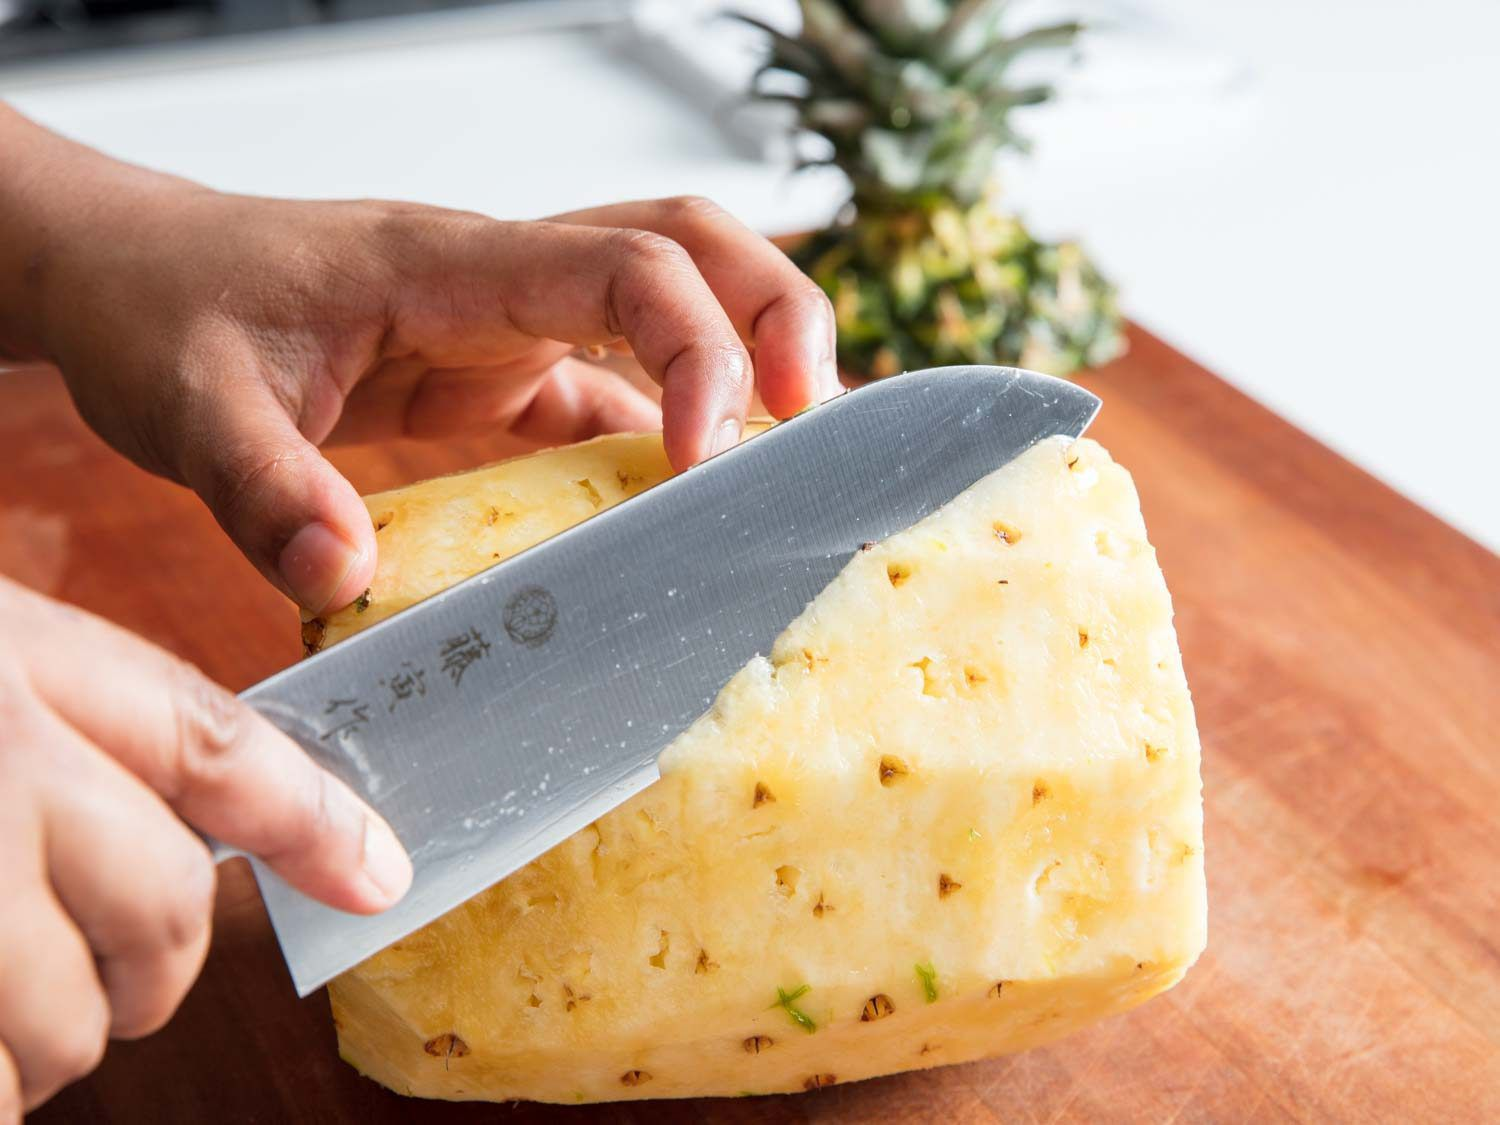 A knife starting to trim the eyes out of a pineapple.